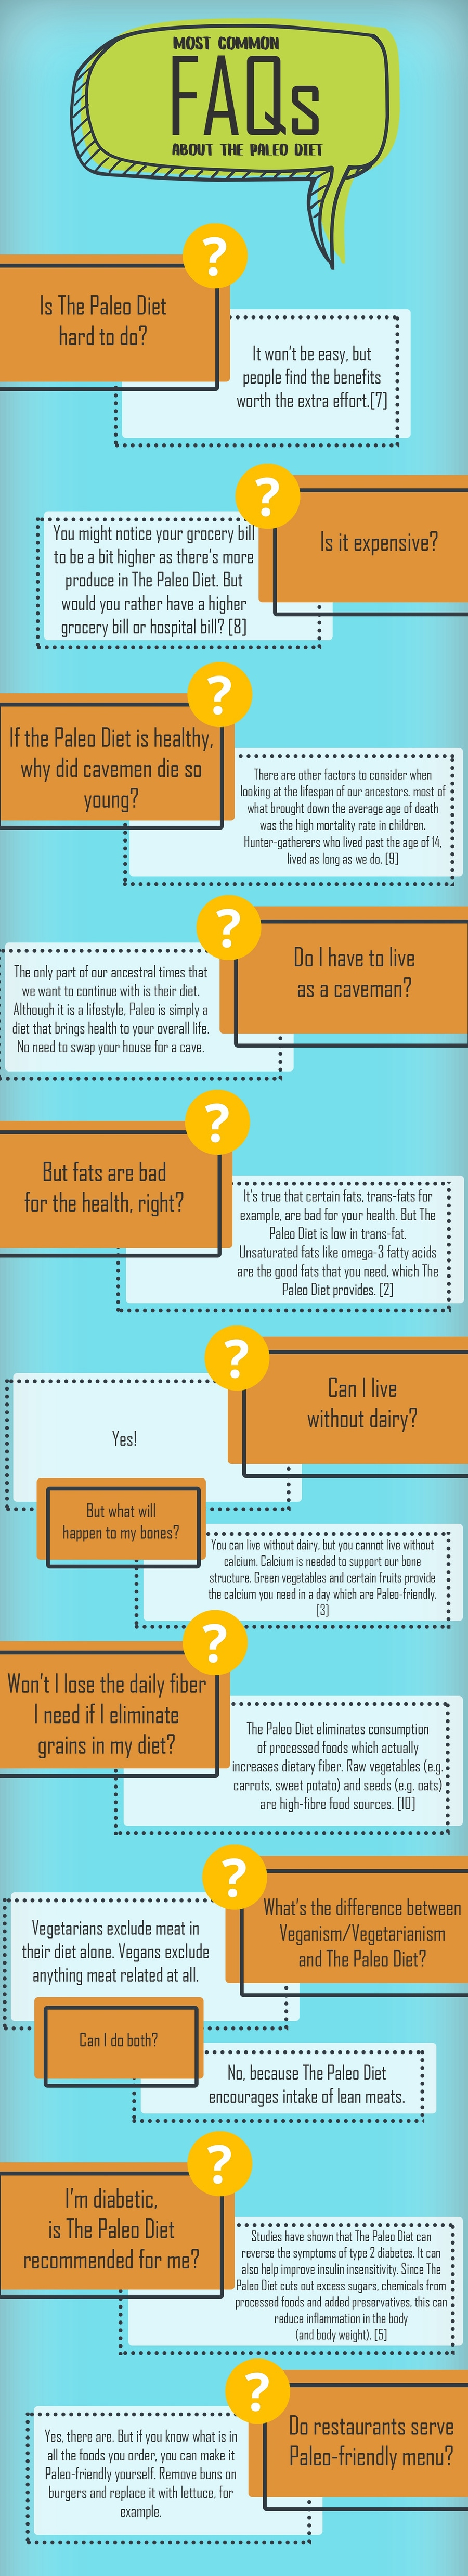 Your Paleo Answers – Most Common FAQ's About The Paleo Diet® image